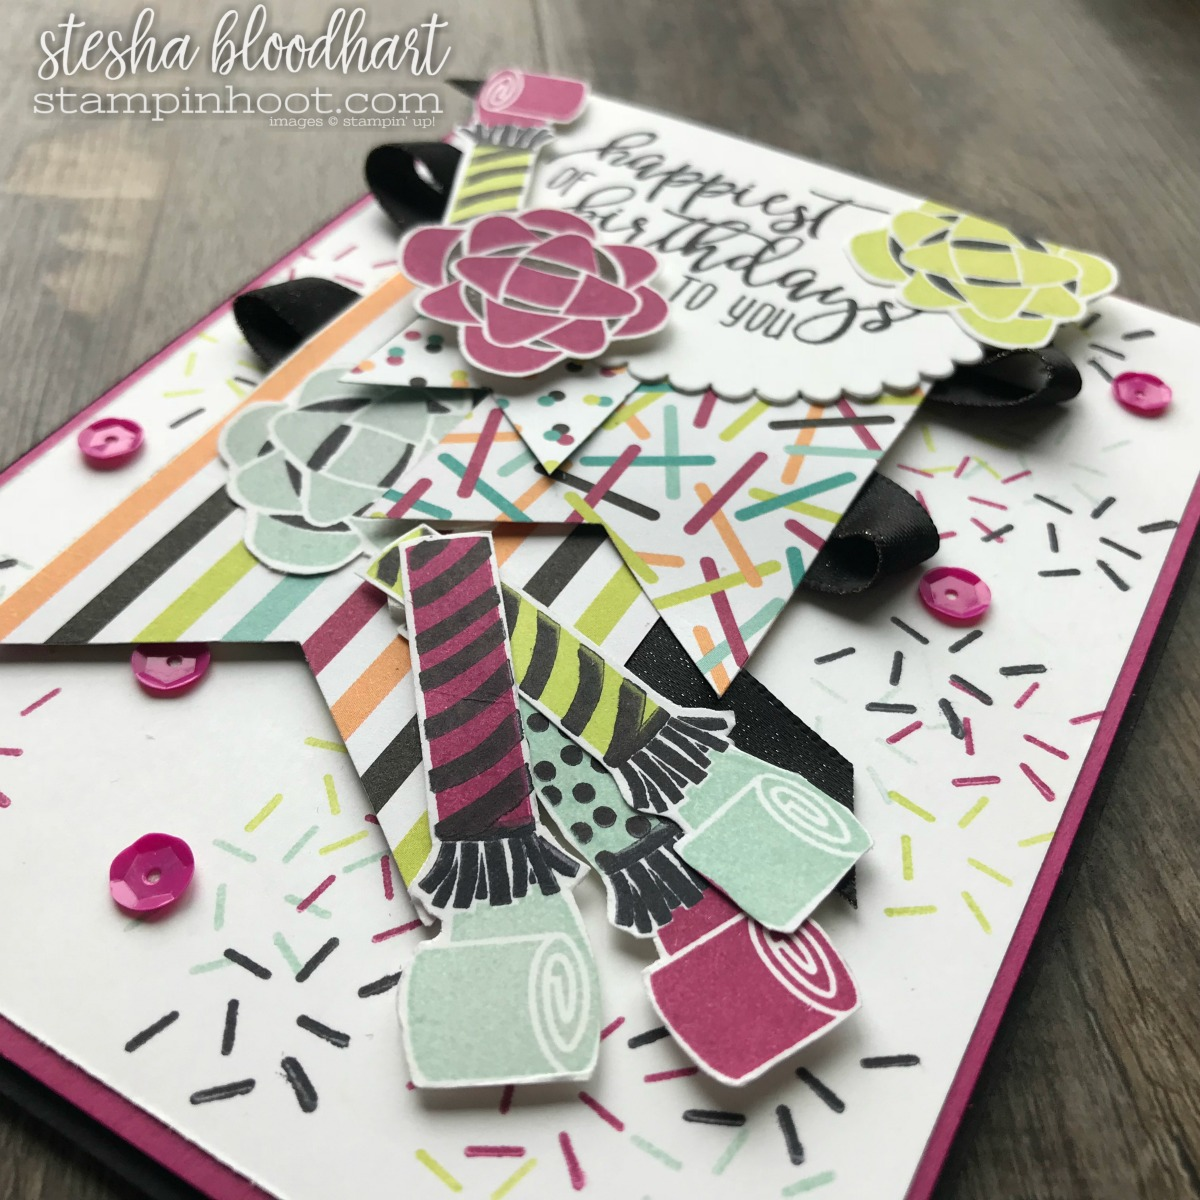 Picture Perfect Birthday Stamp Set from the 2018 Occasions Catalog for the Stamp Review Crew Blog Hop. Created by Stesha Bloodhart, Stampin' Hoot! #steshabloodhart #stampinhoot